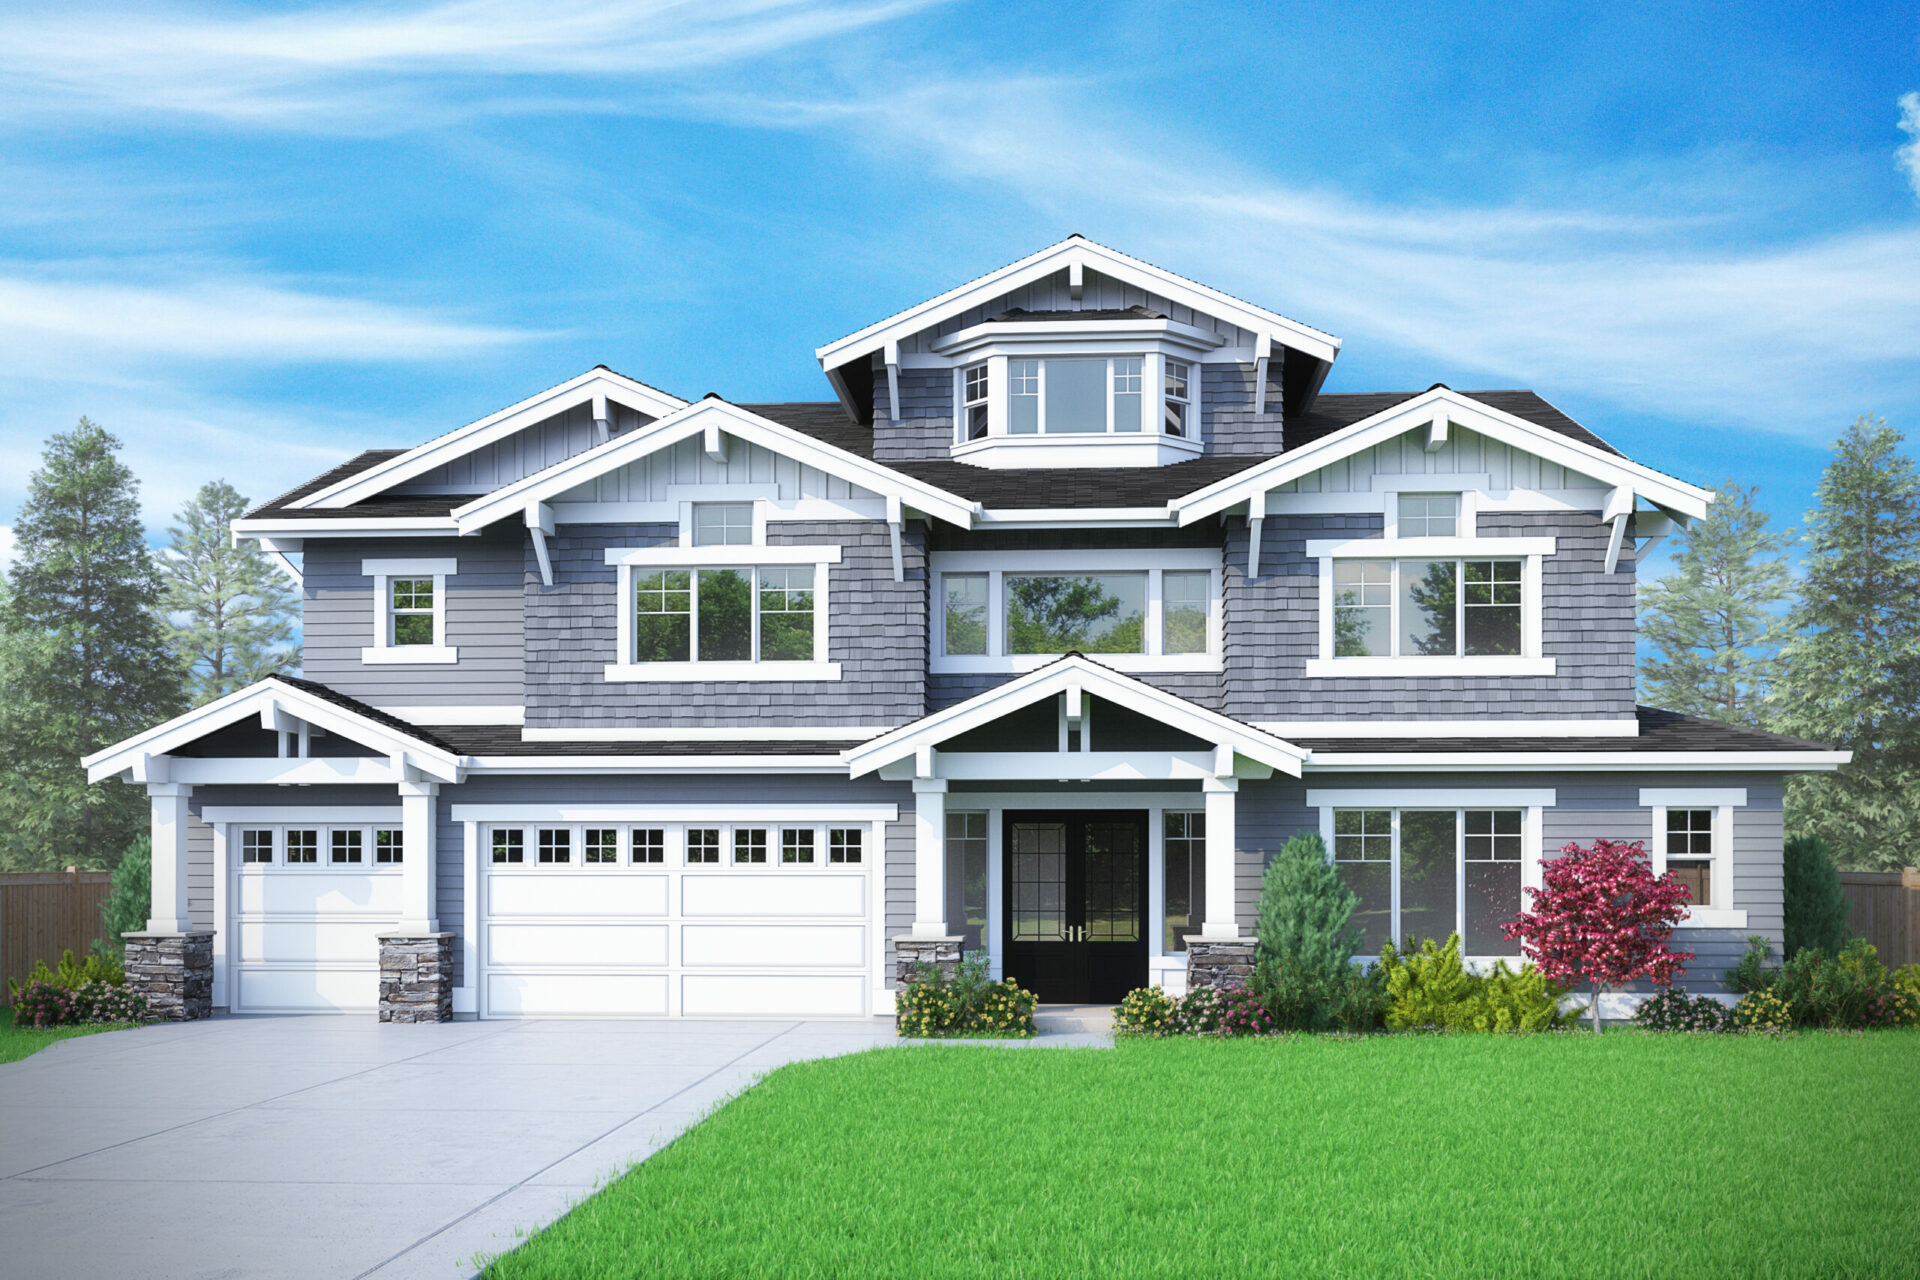 View our new luxury home construction on 3029 106th Ave SE in Bellevue, WA from MN Custom Homes